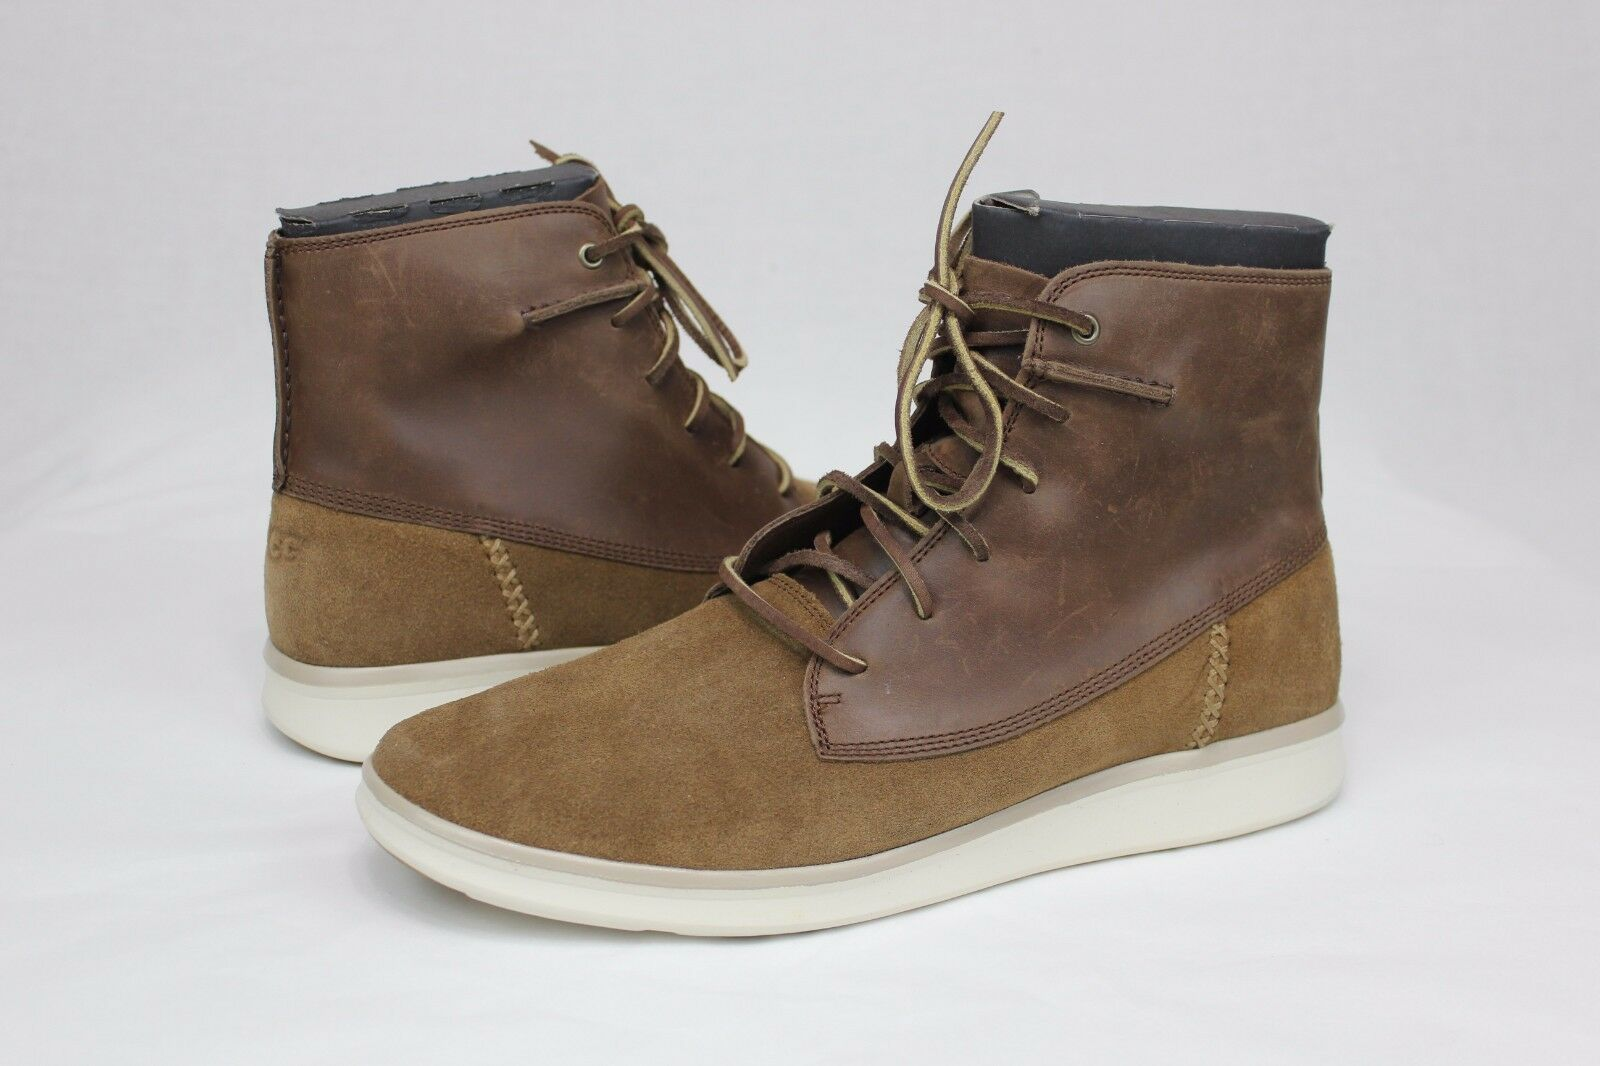 19642ad67ac UGG Lamont Chestnut Mens Leather Suede BOOTS Size 12 US